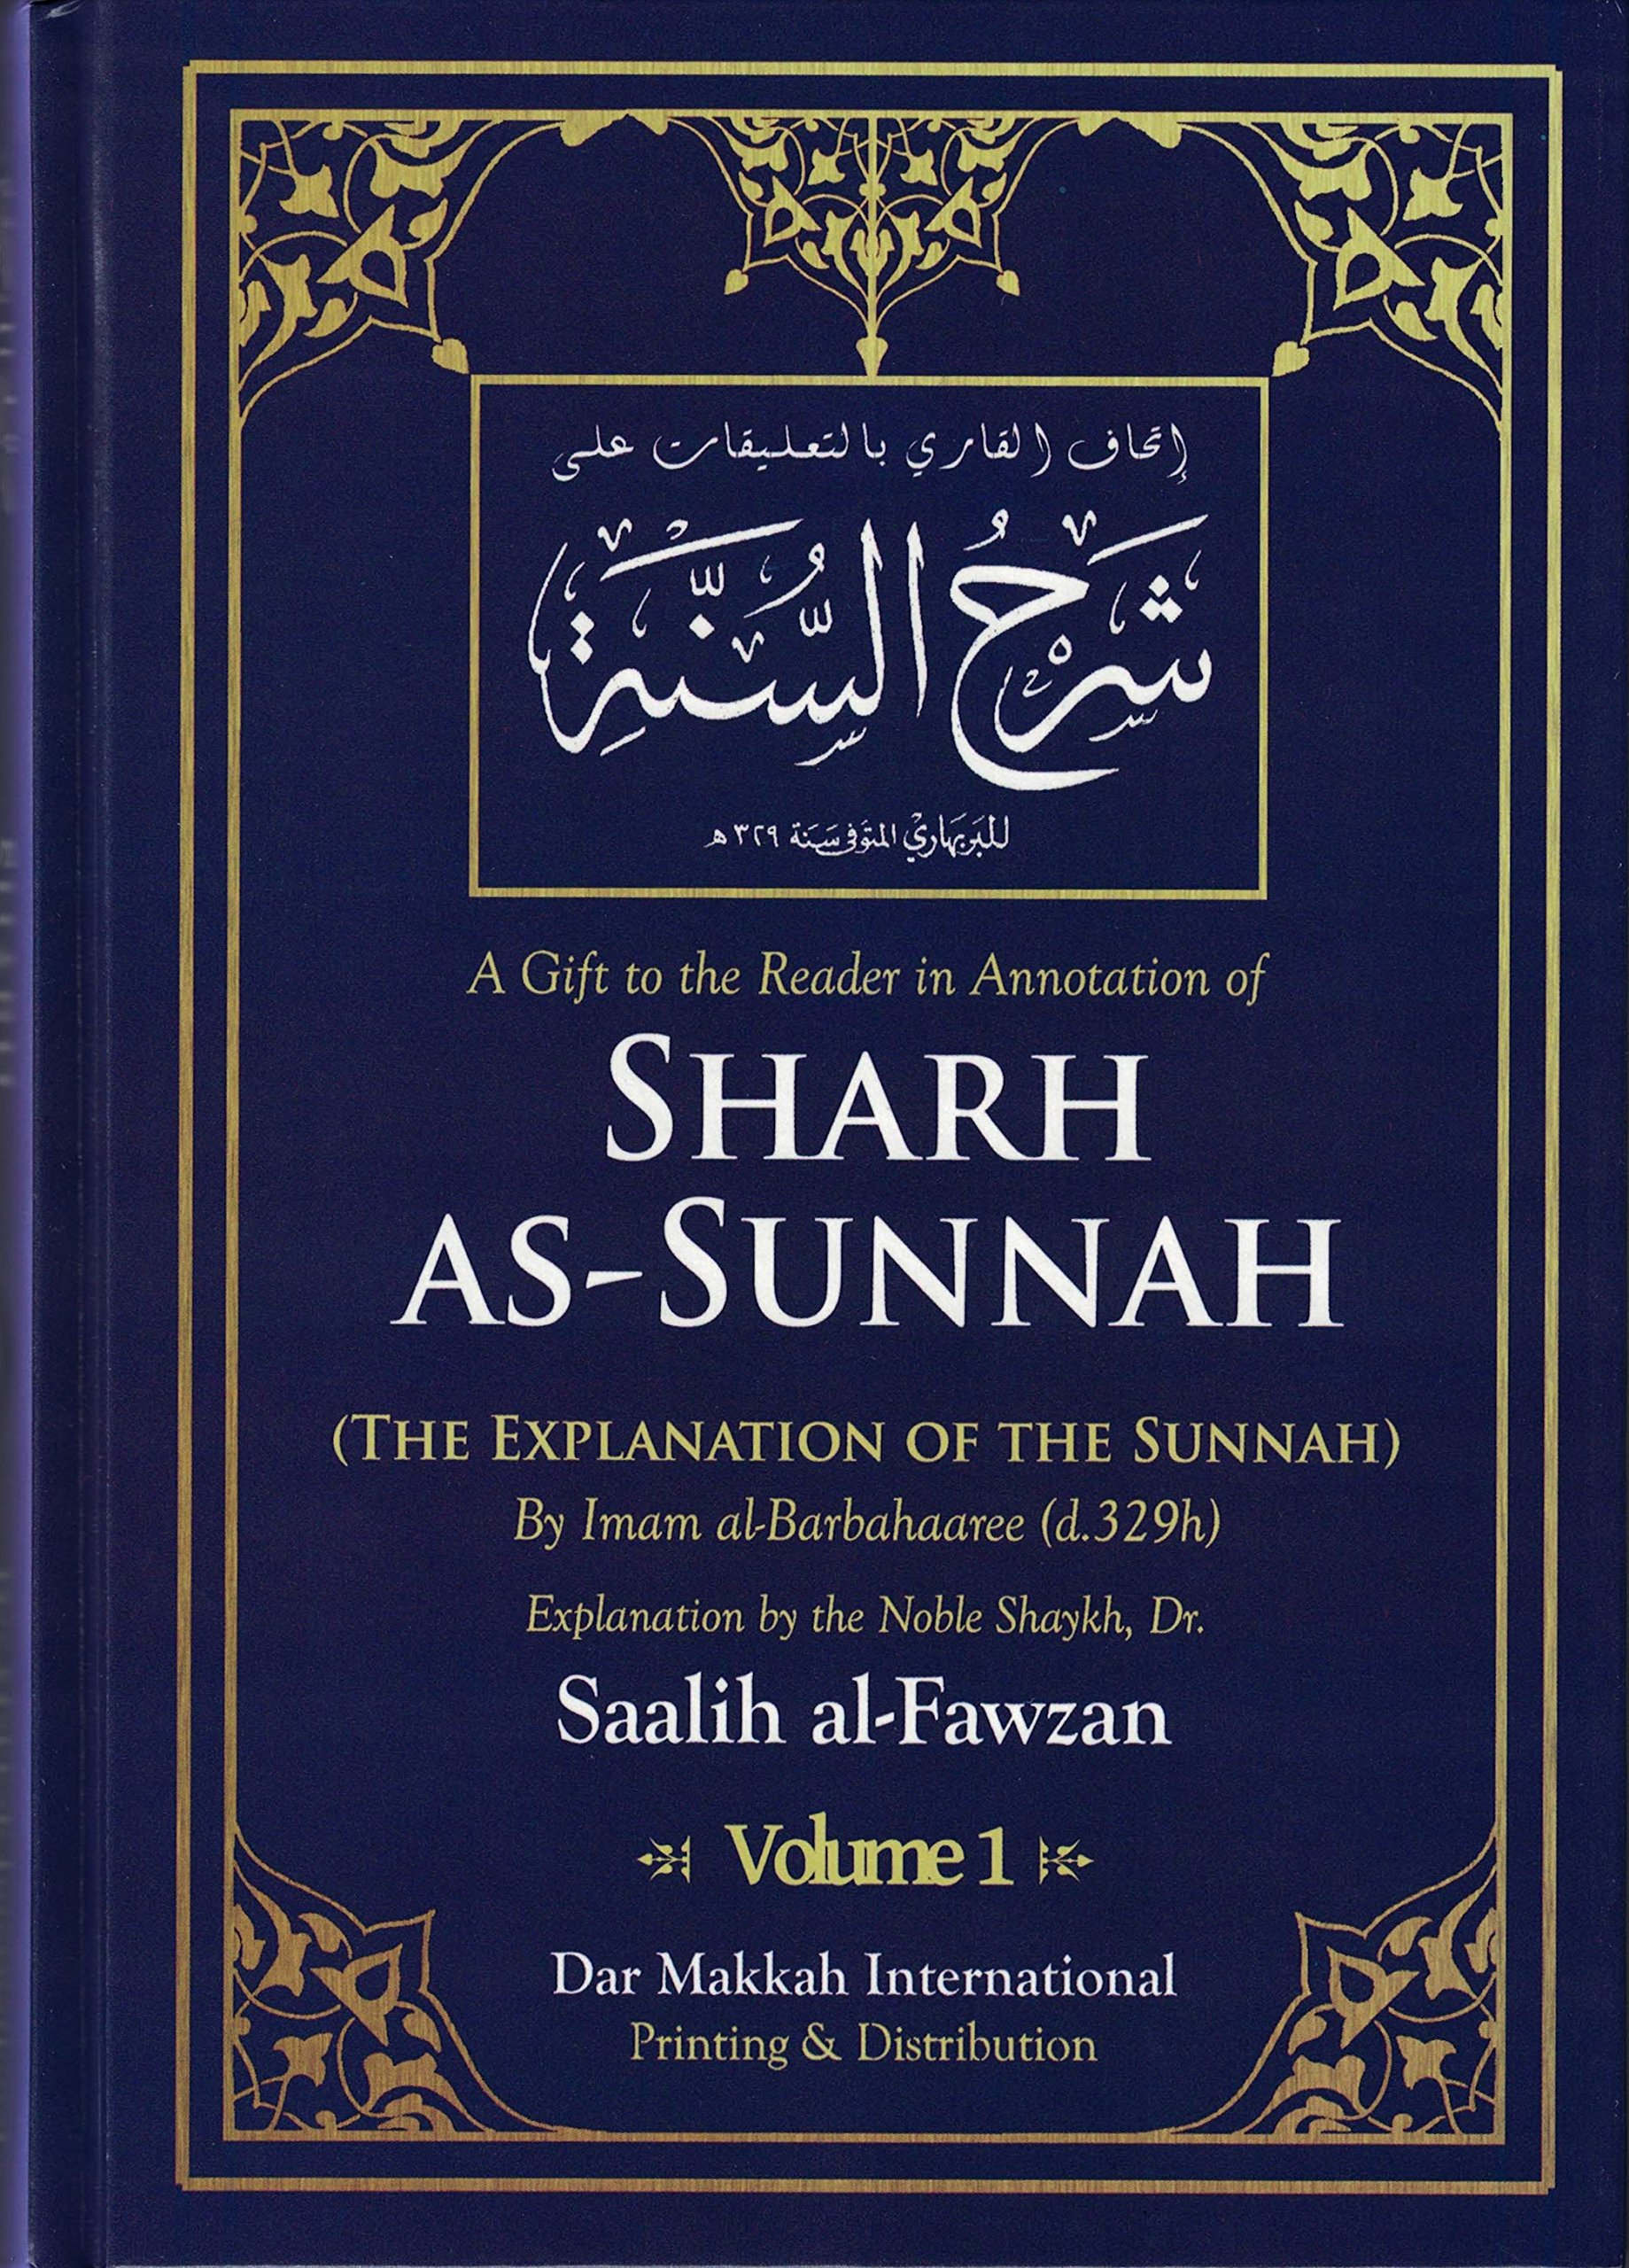 Sharh As-sunnah, Explanation of the Sunnah By Imam Al-barbahari (2